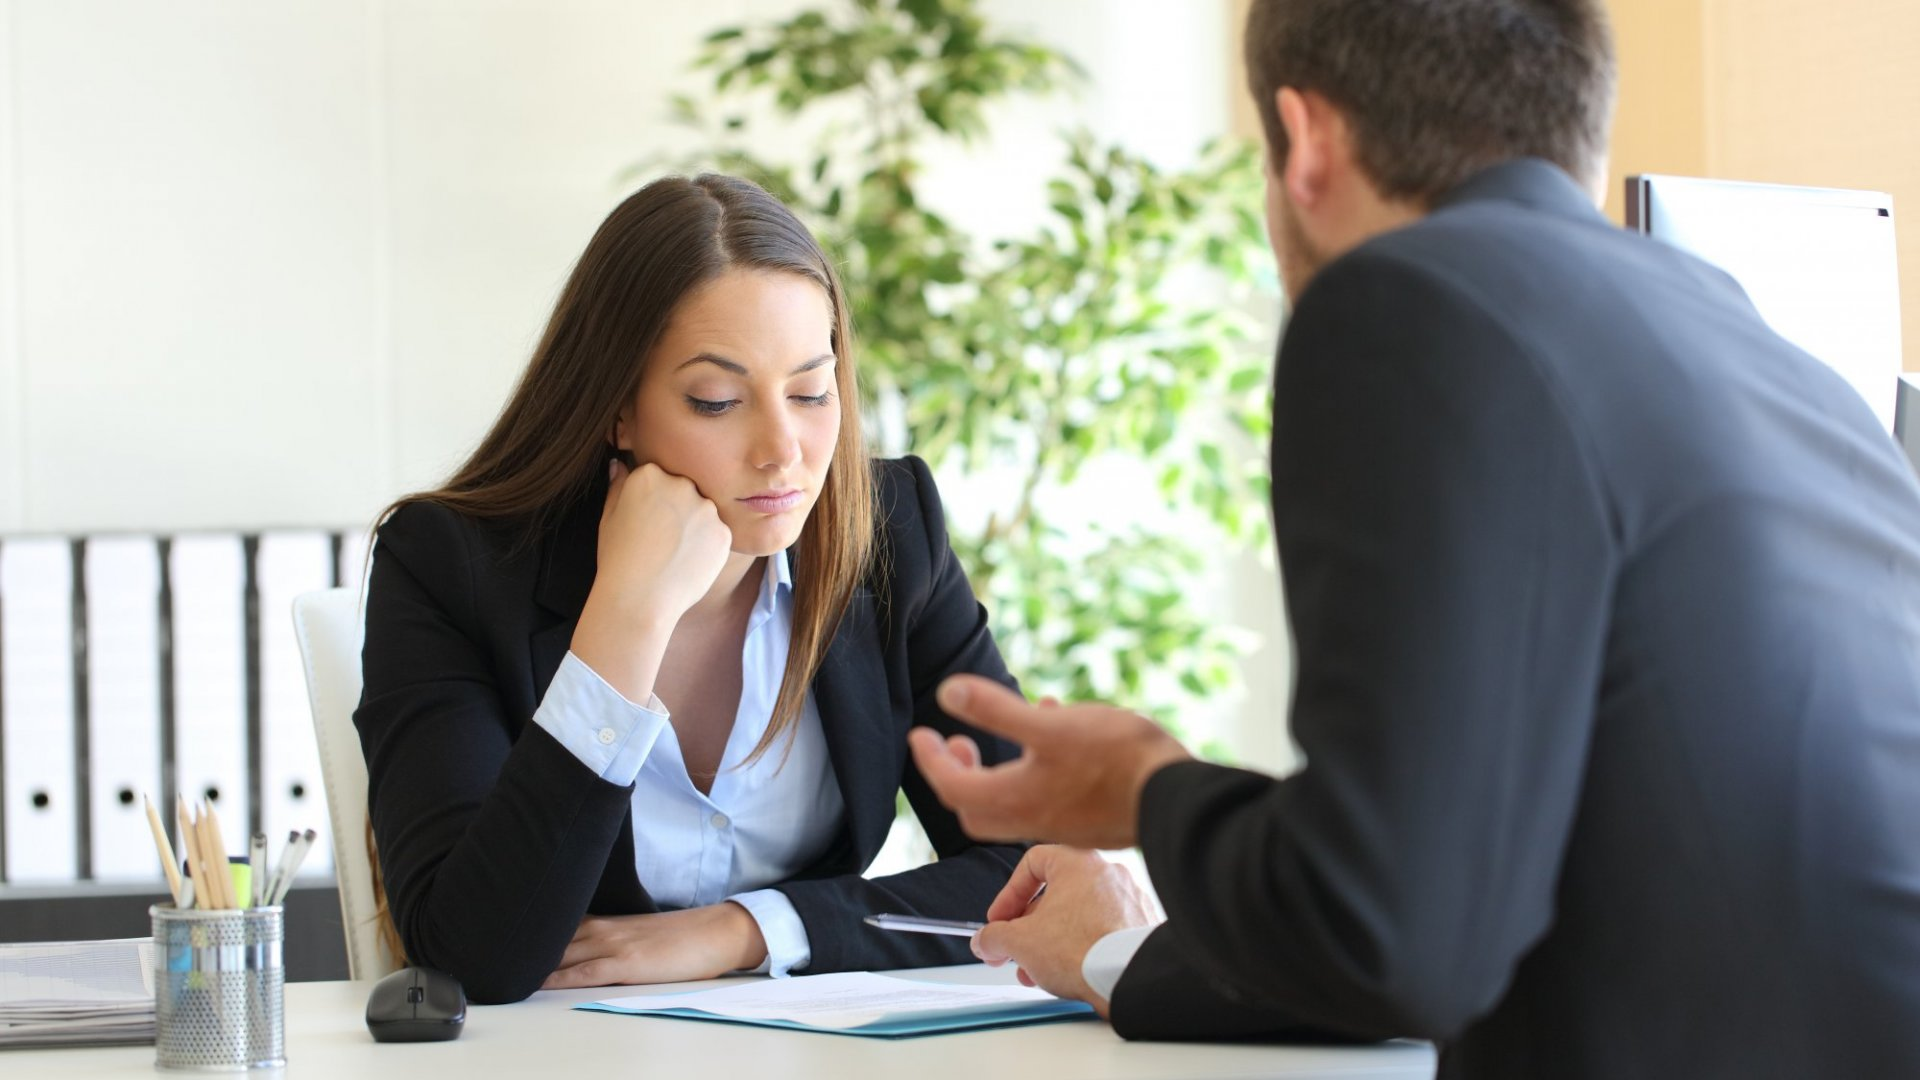 How can you really tell if a salesperson is good or bad during the hiring process